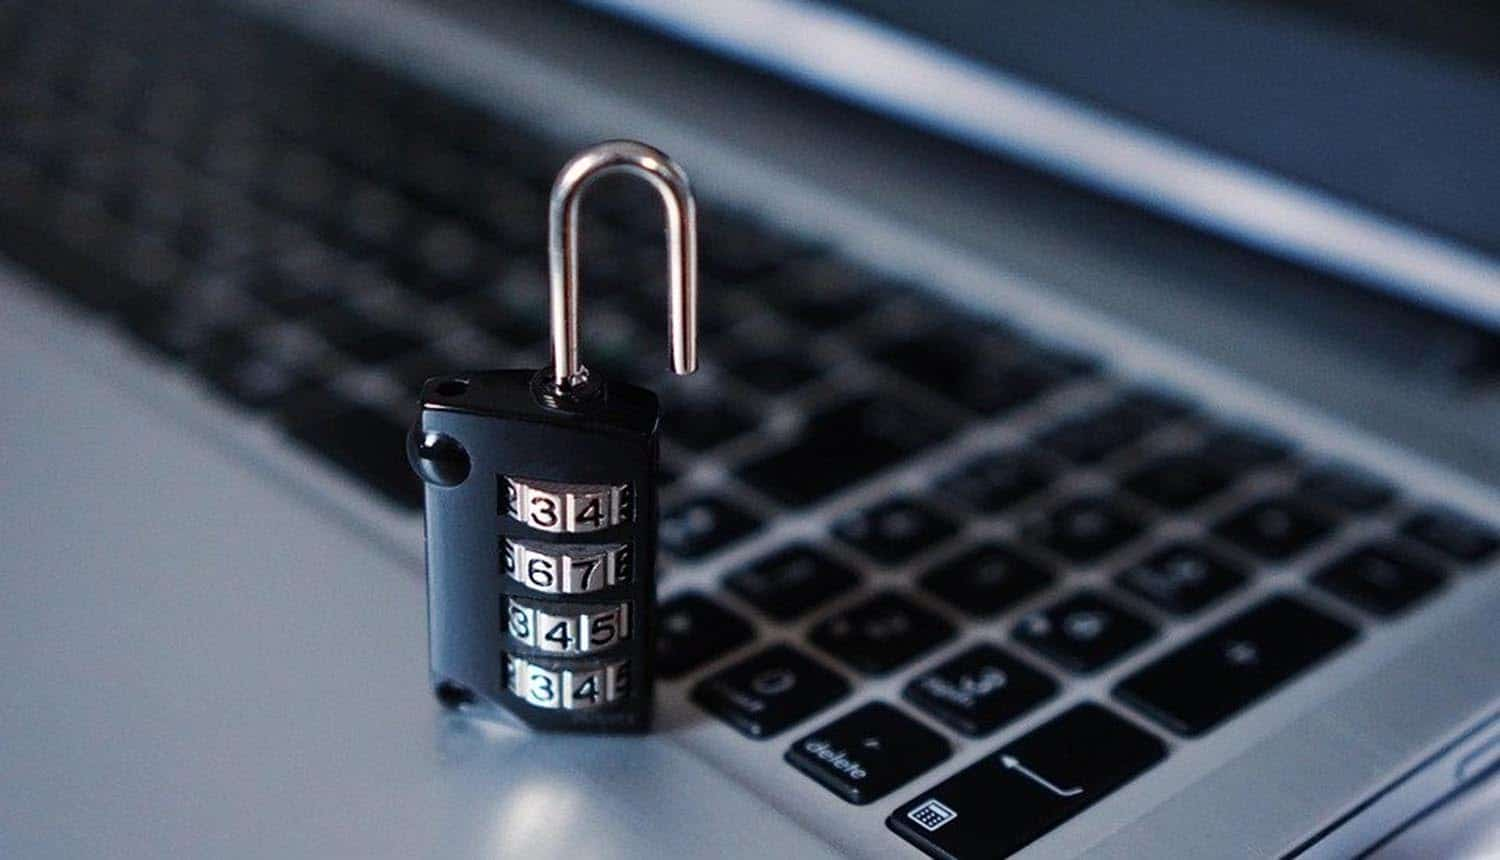 Lock on a keyboard showing how CS students can be better hackers